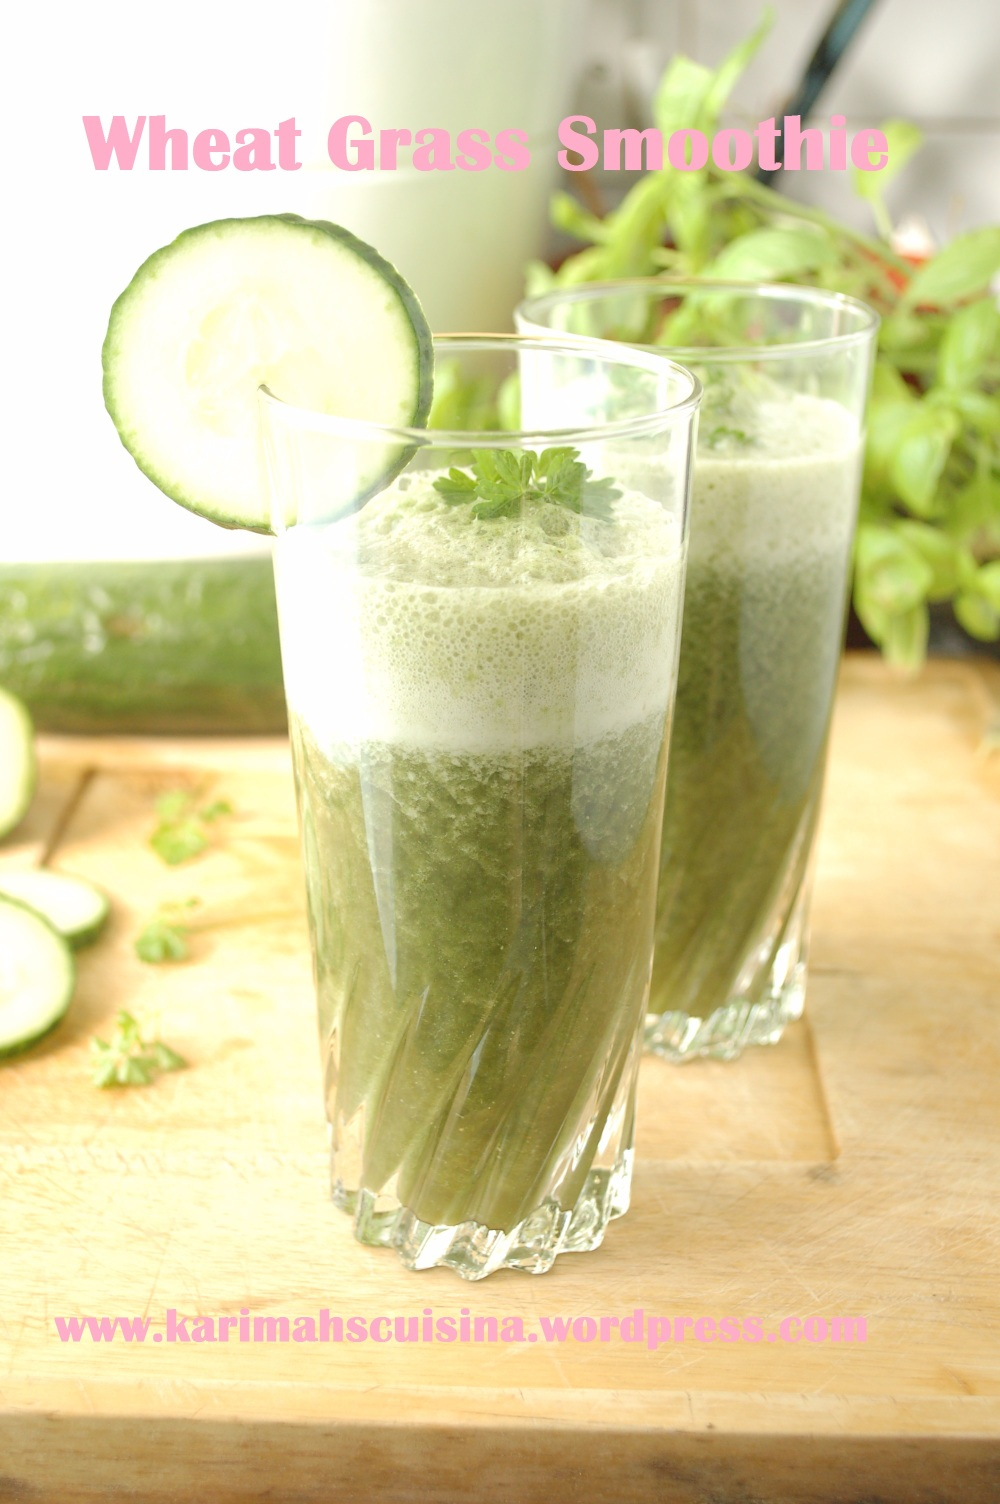 Wheat-grass & Fenugreek Smoothie